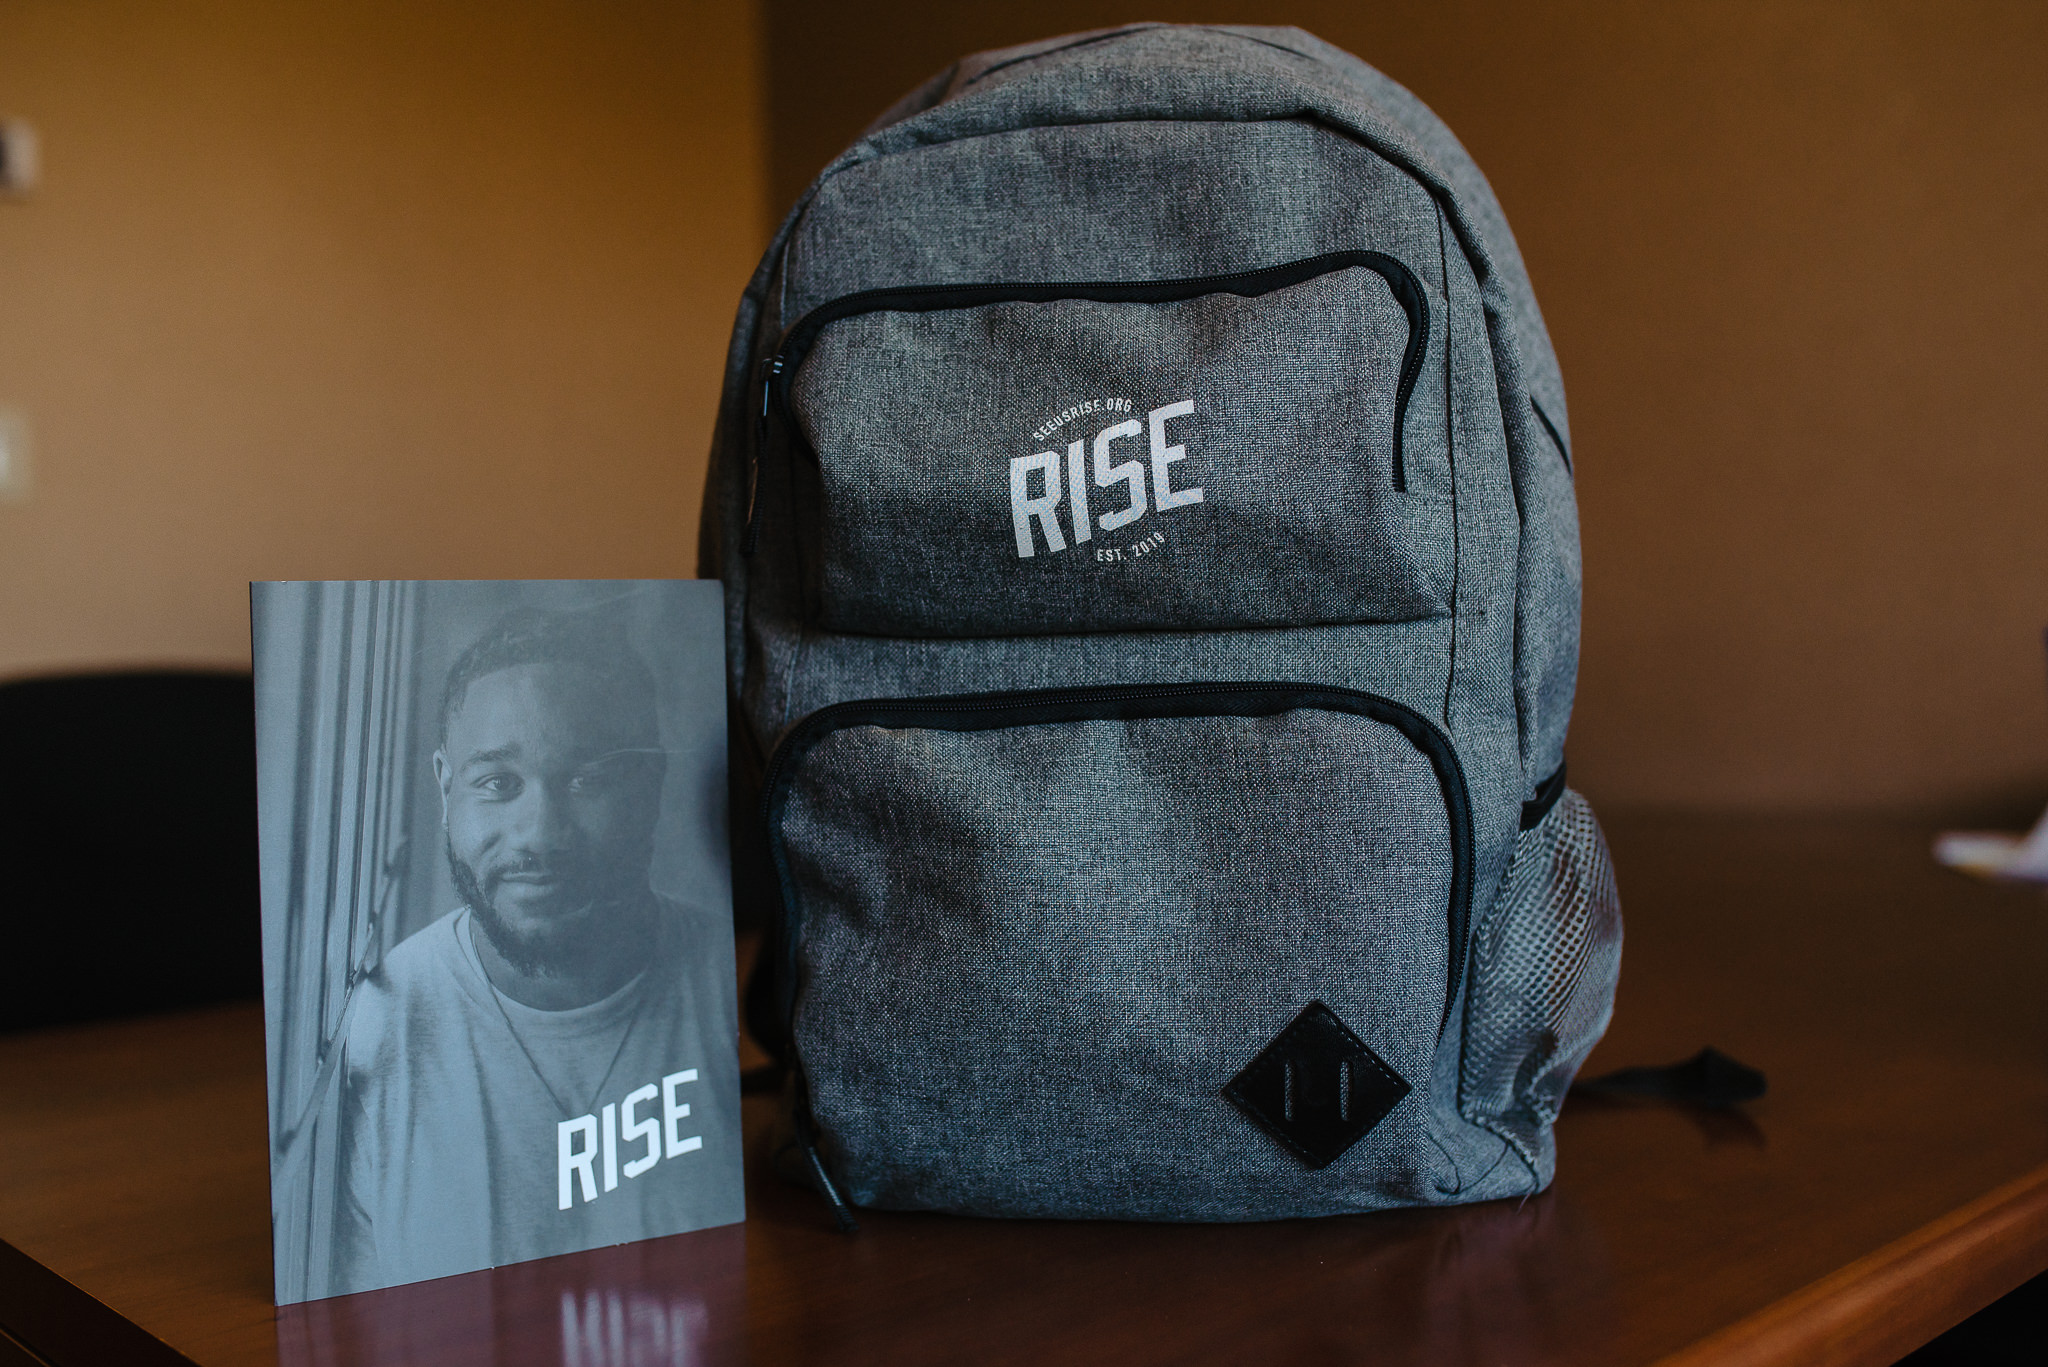 RISE Welcome Home Bags!